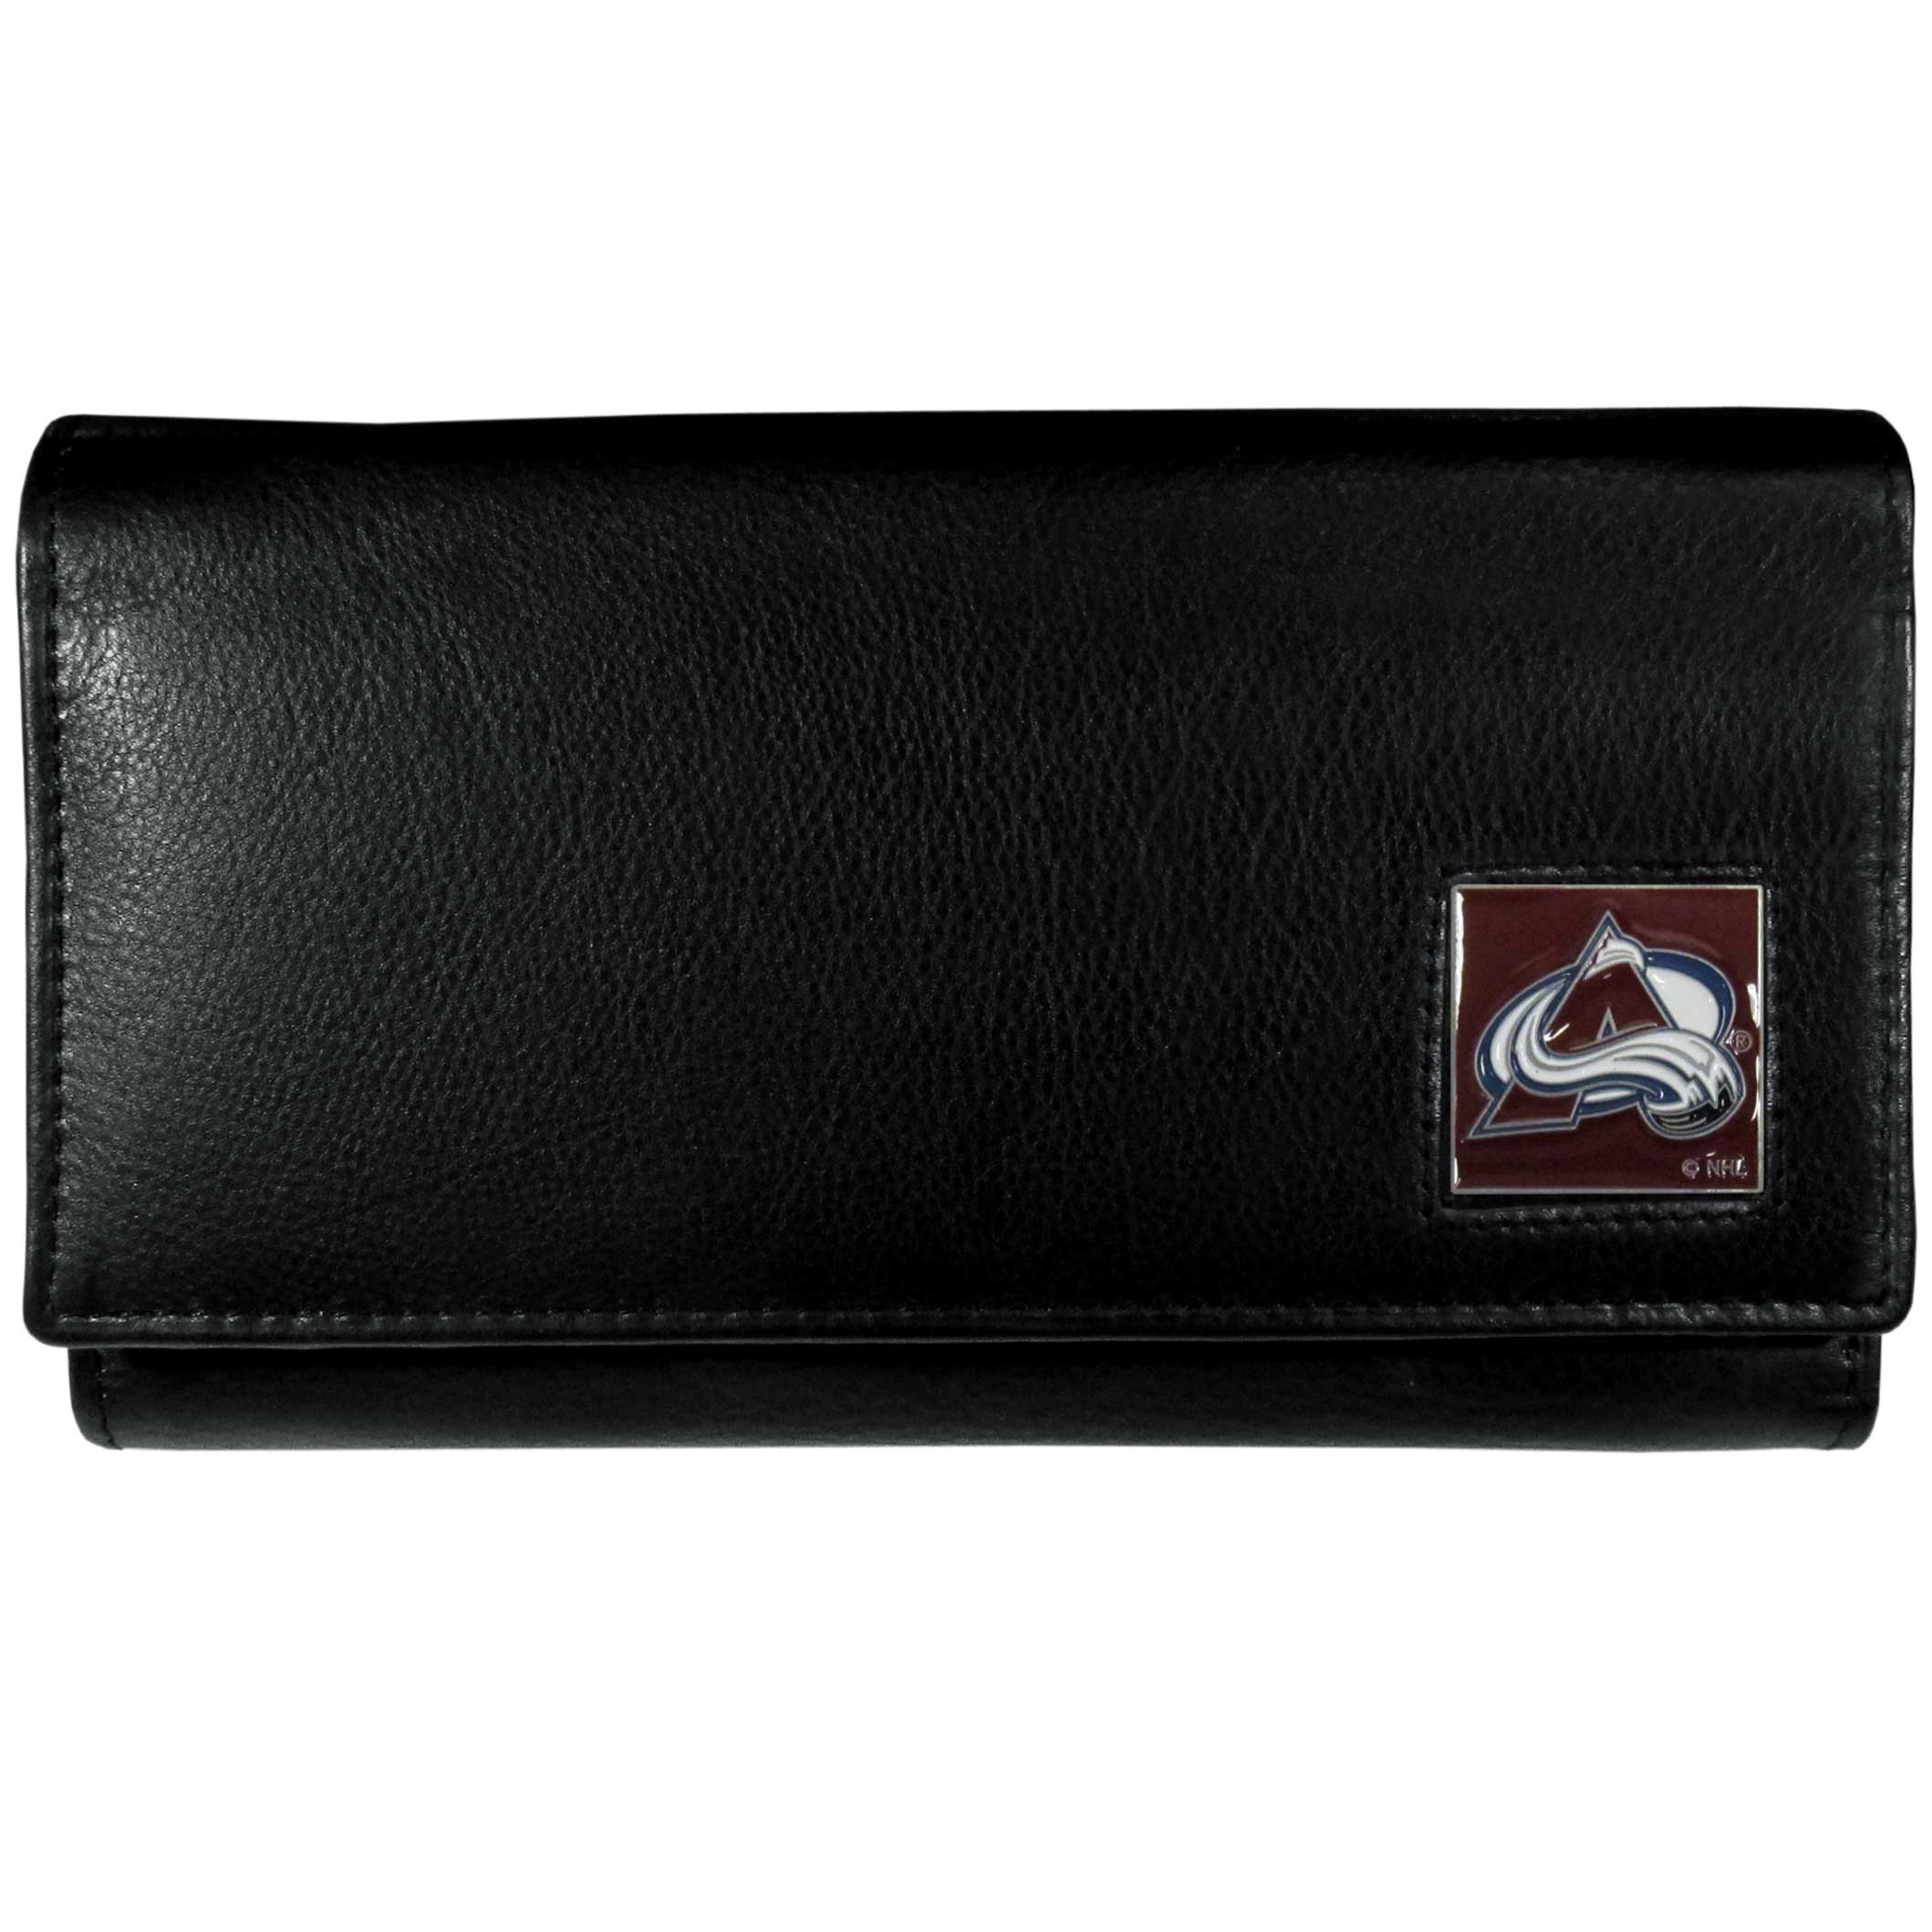 Colorado Avalanche® Leather Women's Wallet - This genuine leather women's pocketbook features 9 credit card slots, a windowed ID slot, spacious front pocket, inner pocket and zippered coin pocket. The front of the pocketbook has a hand painted metal square with the Colorado Avalanche® primary logo.